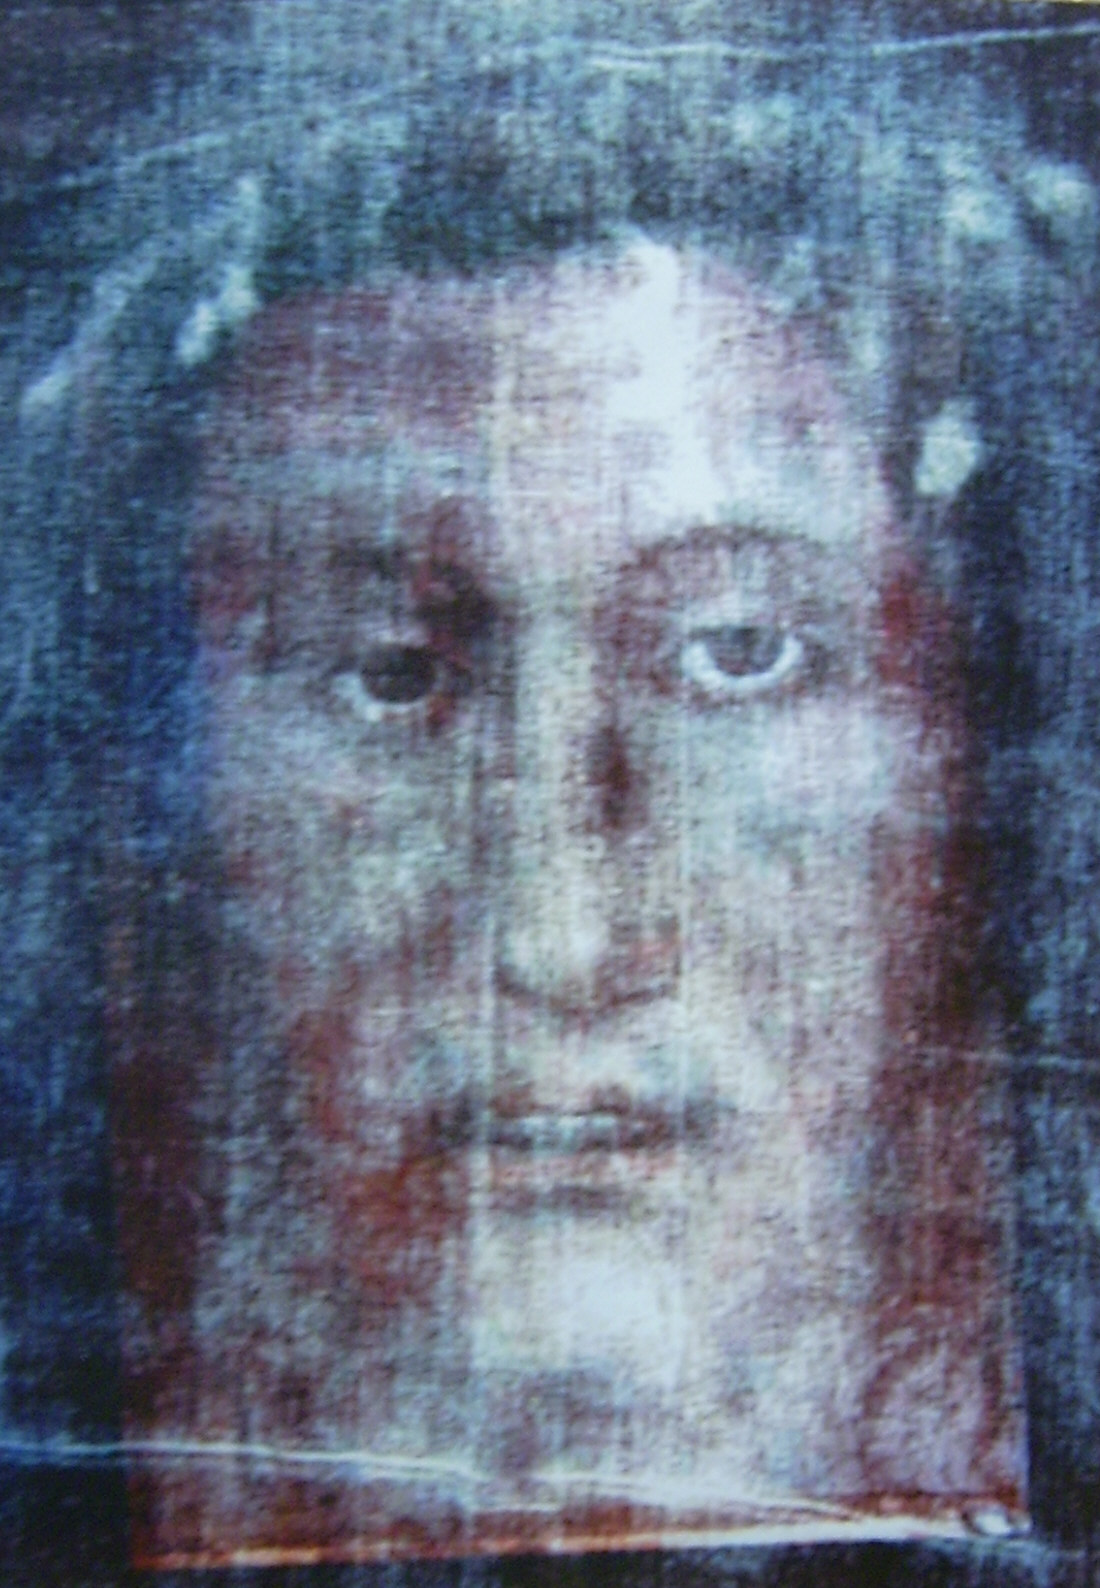 k 5031 shroud of turin - photo#22